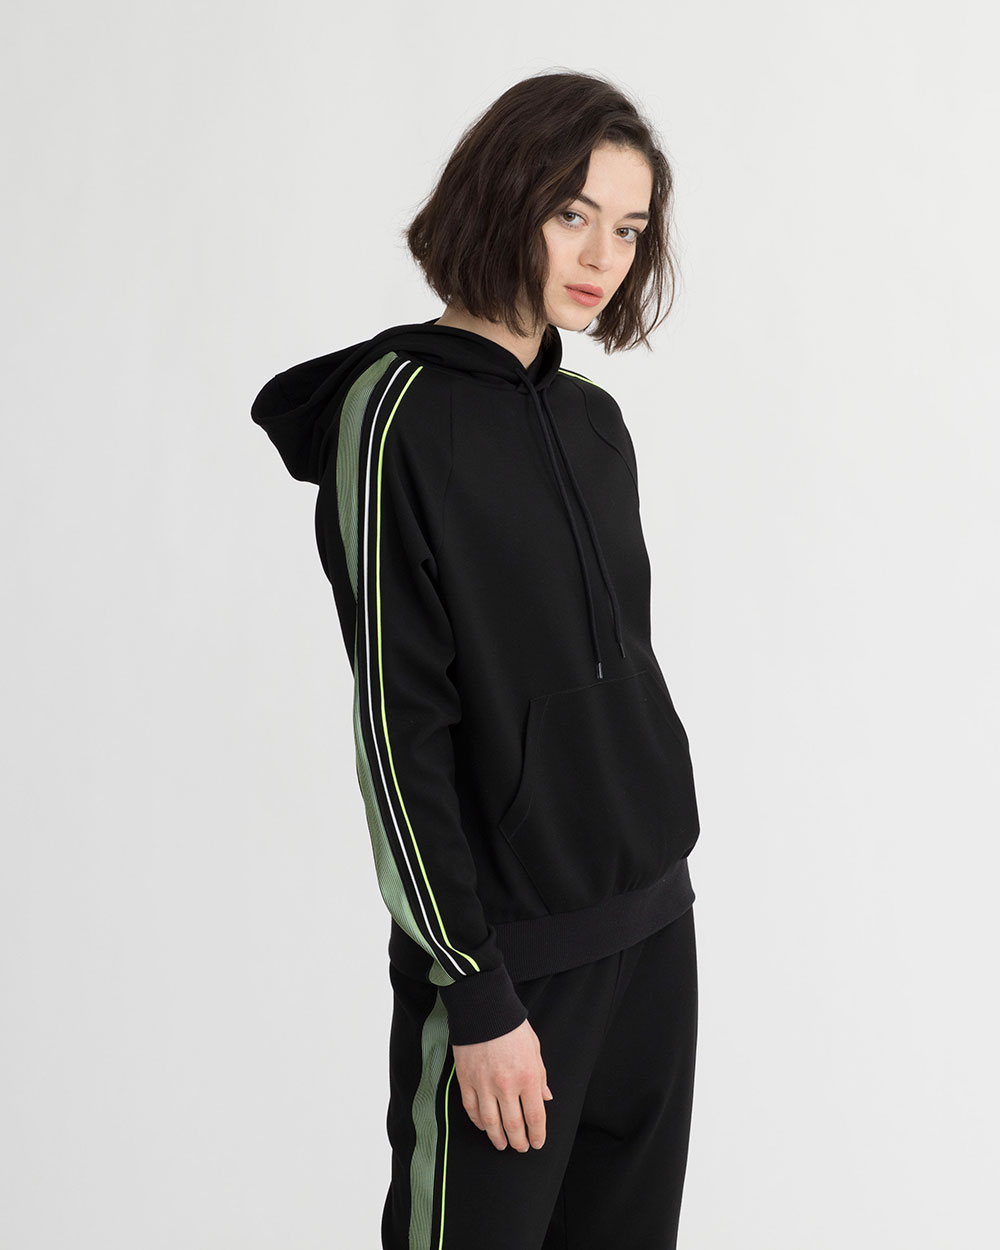 BEVIS HOODIE BLACK & IRIDESCENT LIME GREEN